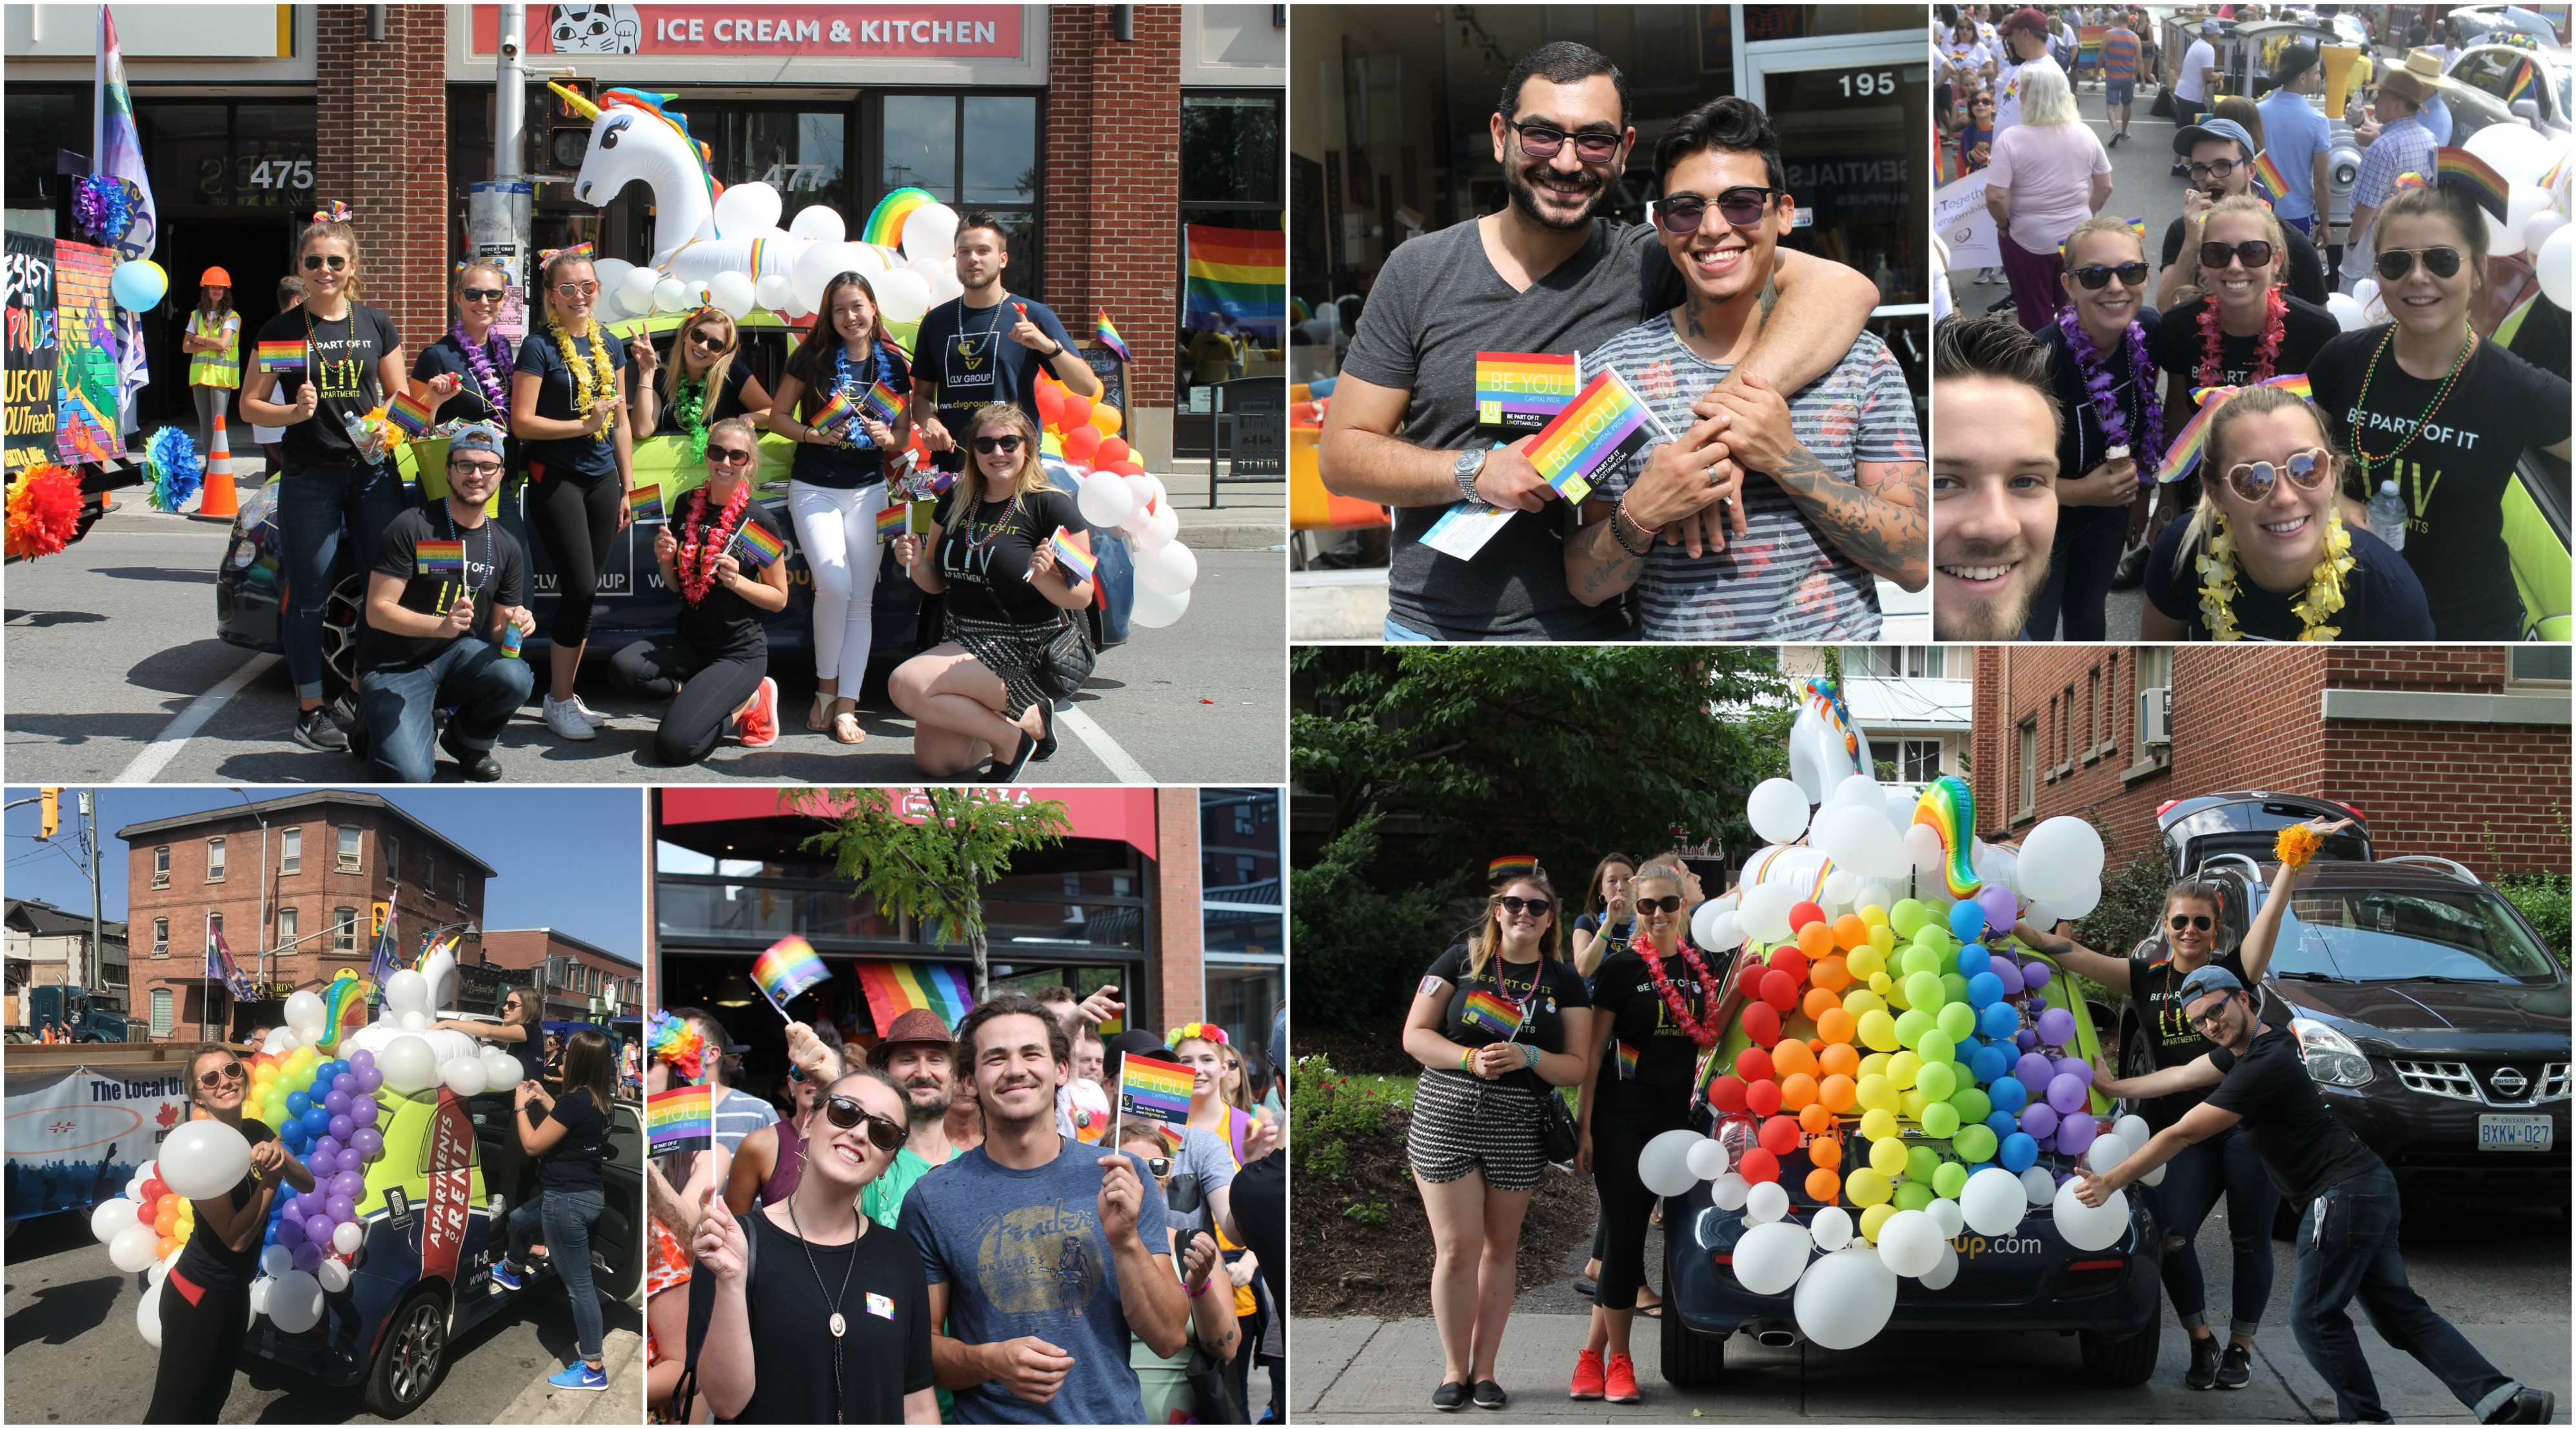 clv-group-capital-pride-ottawa-photos